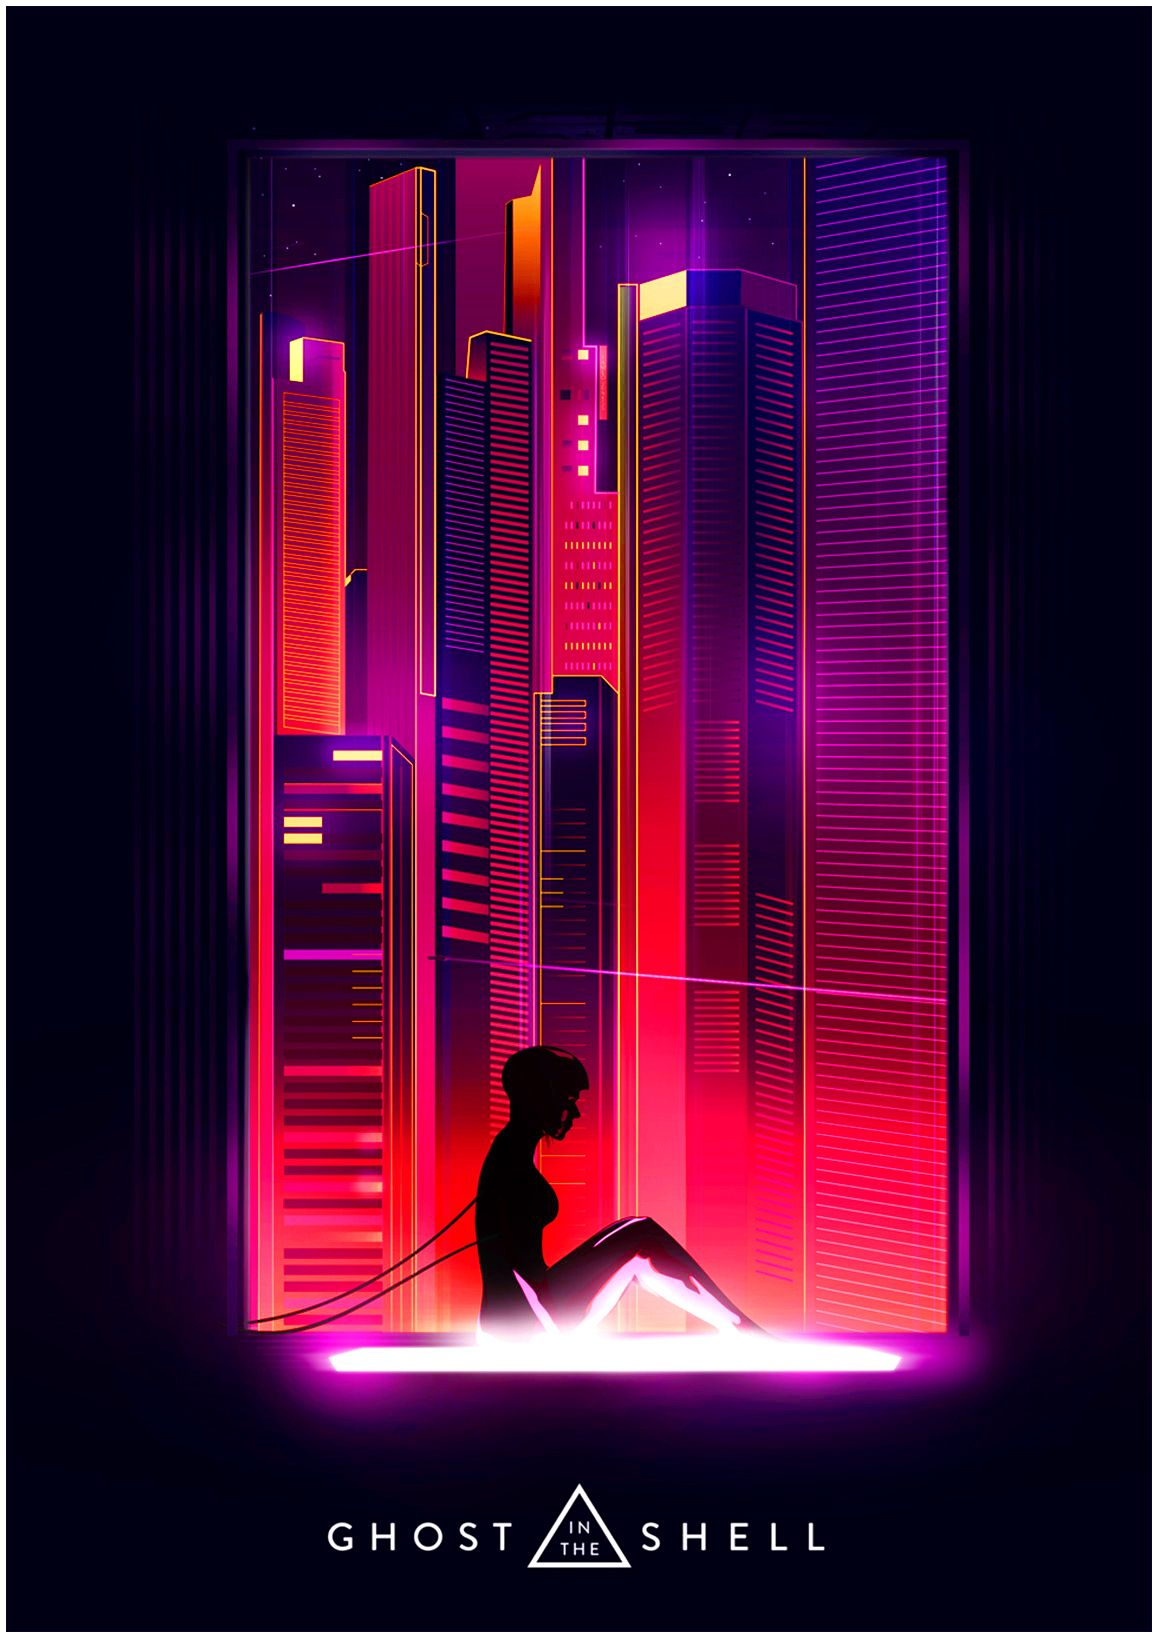 Ghost in the Shell Ghost in the Shell em 2019 Pôsteres